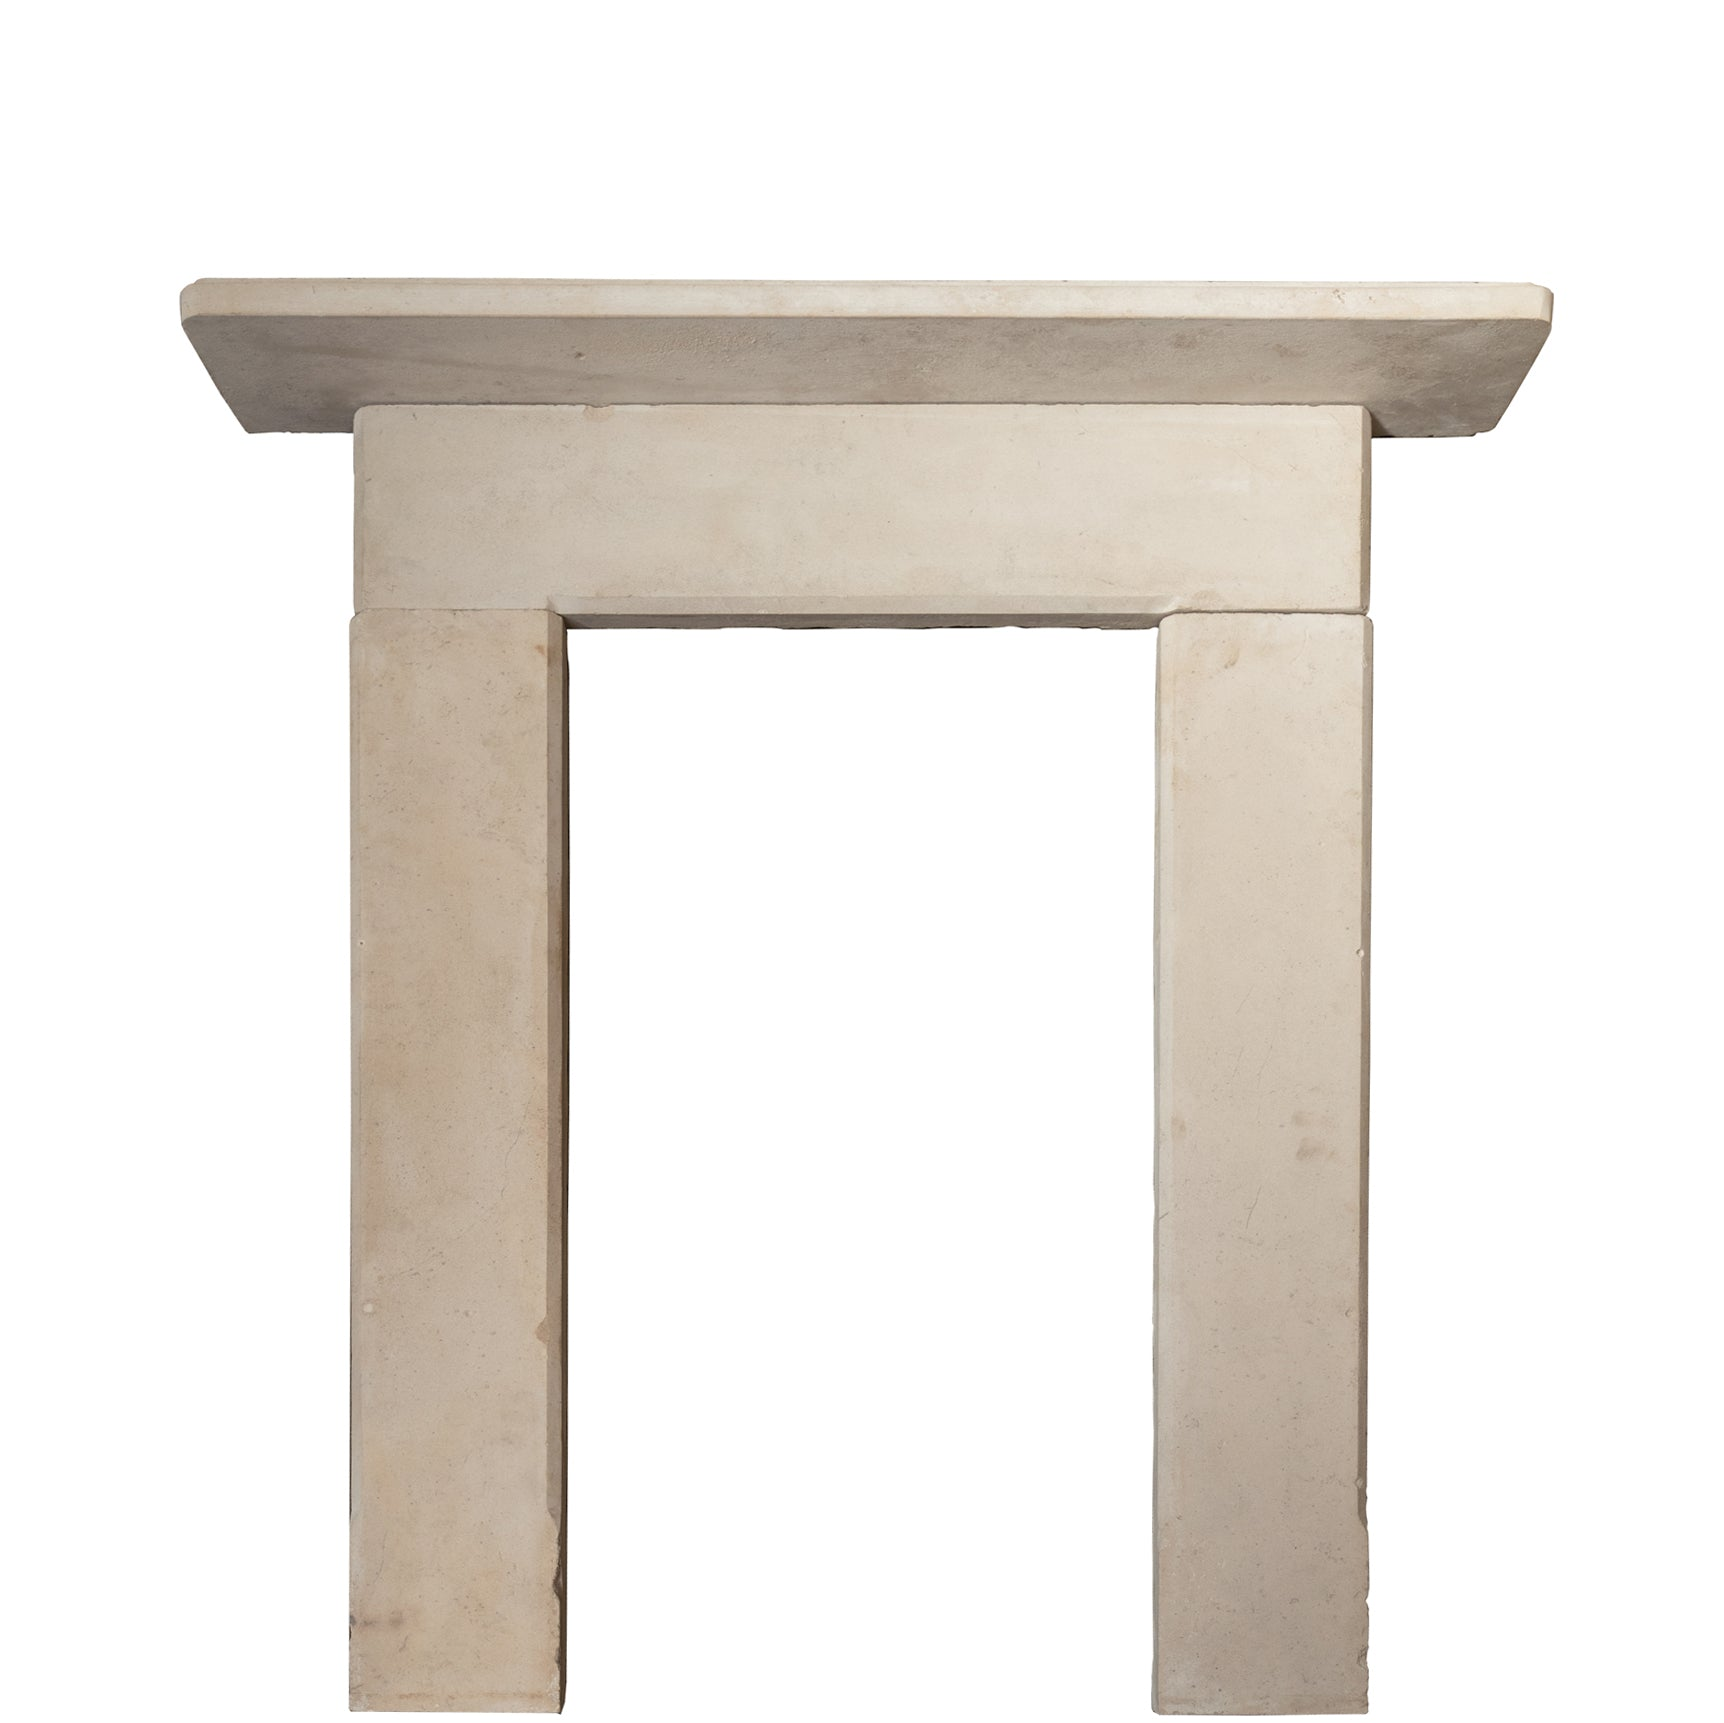 Mid 19th Century Limestone Fireplace Surround - architectural-forum